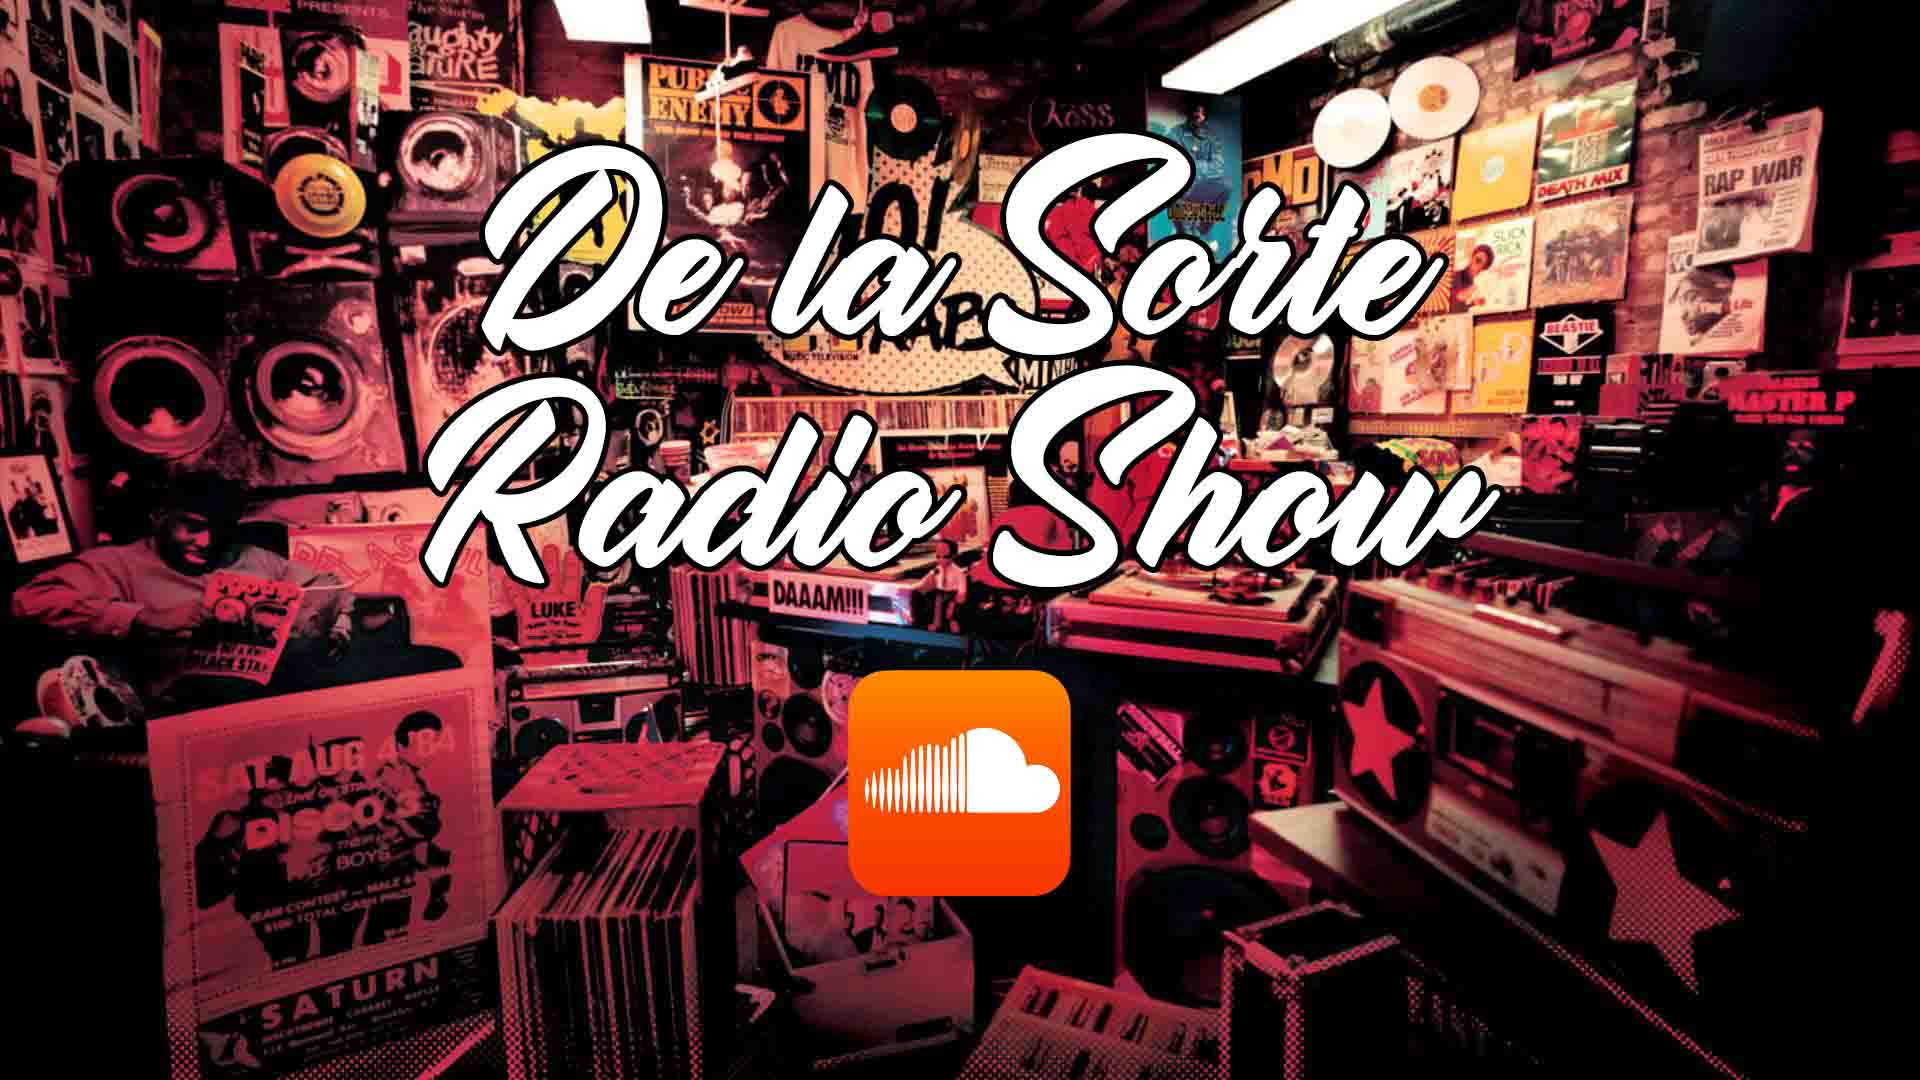 Radio Mixtapes by Dj for De La Sorte